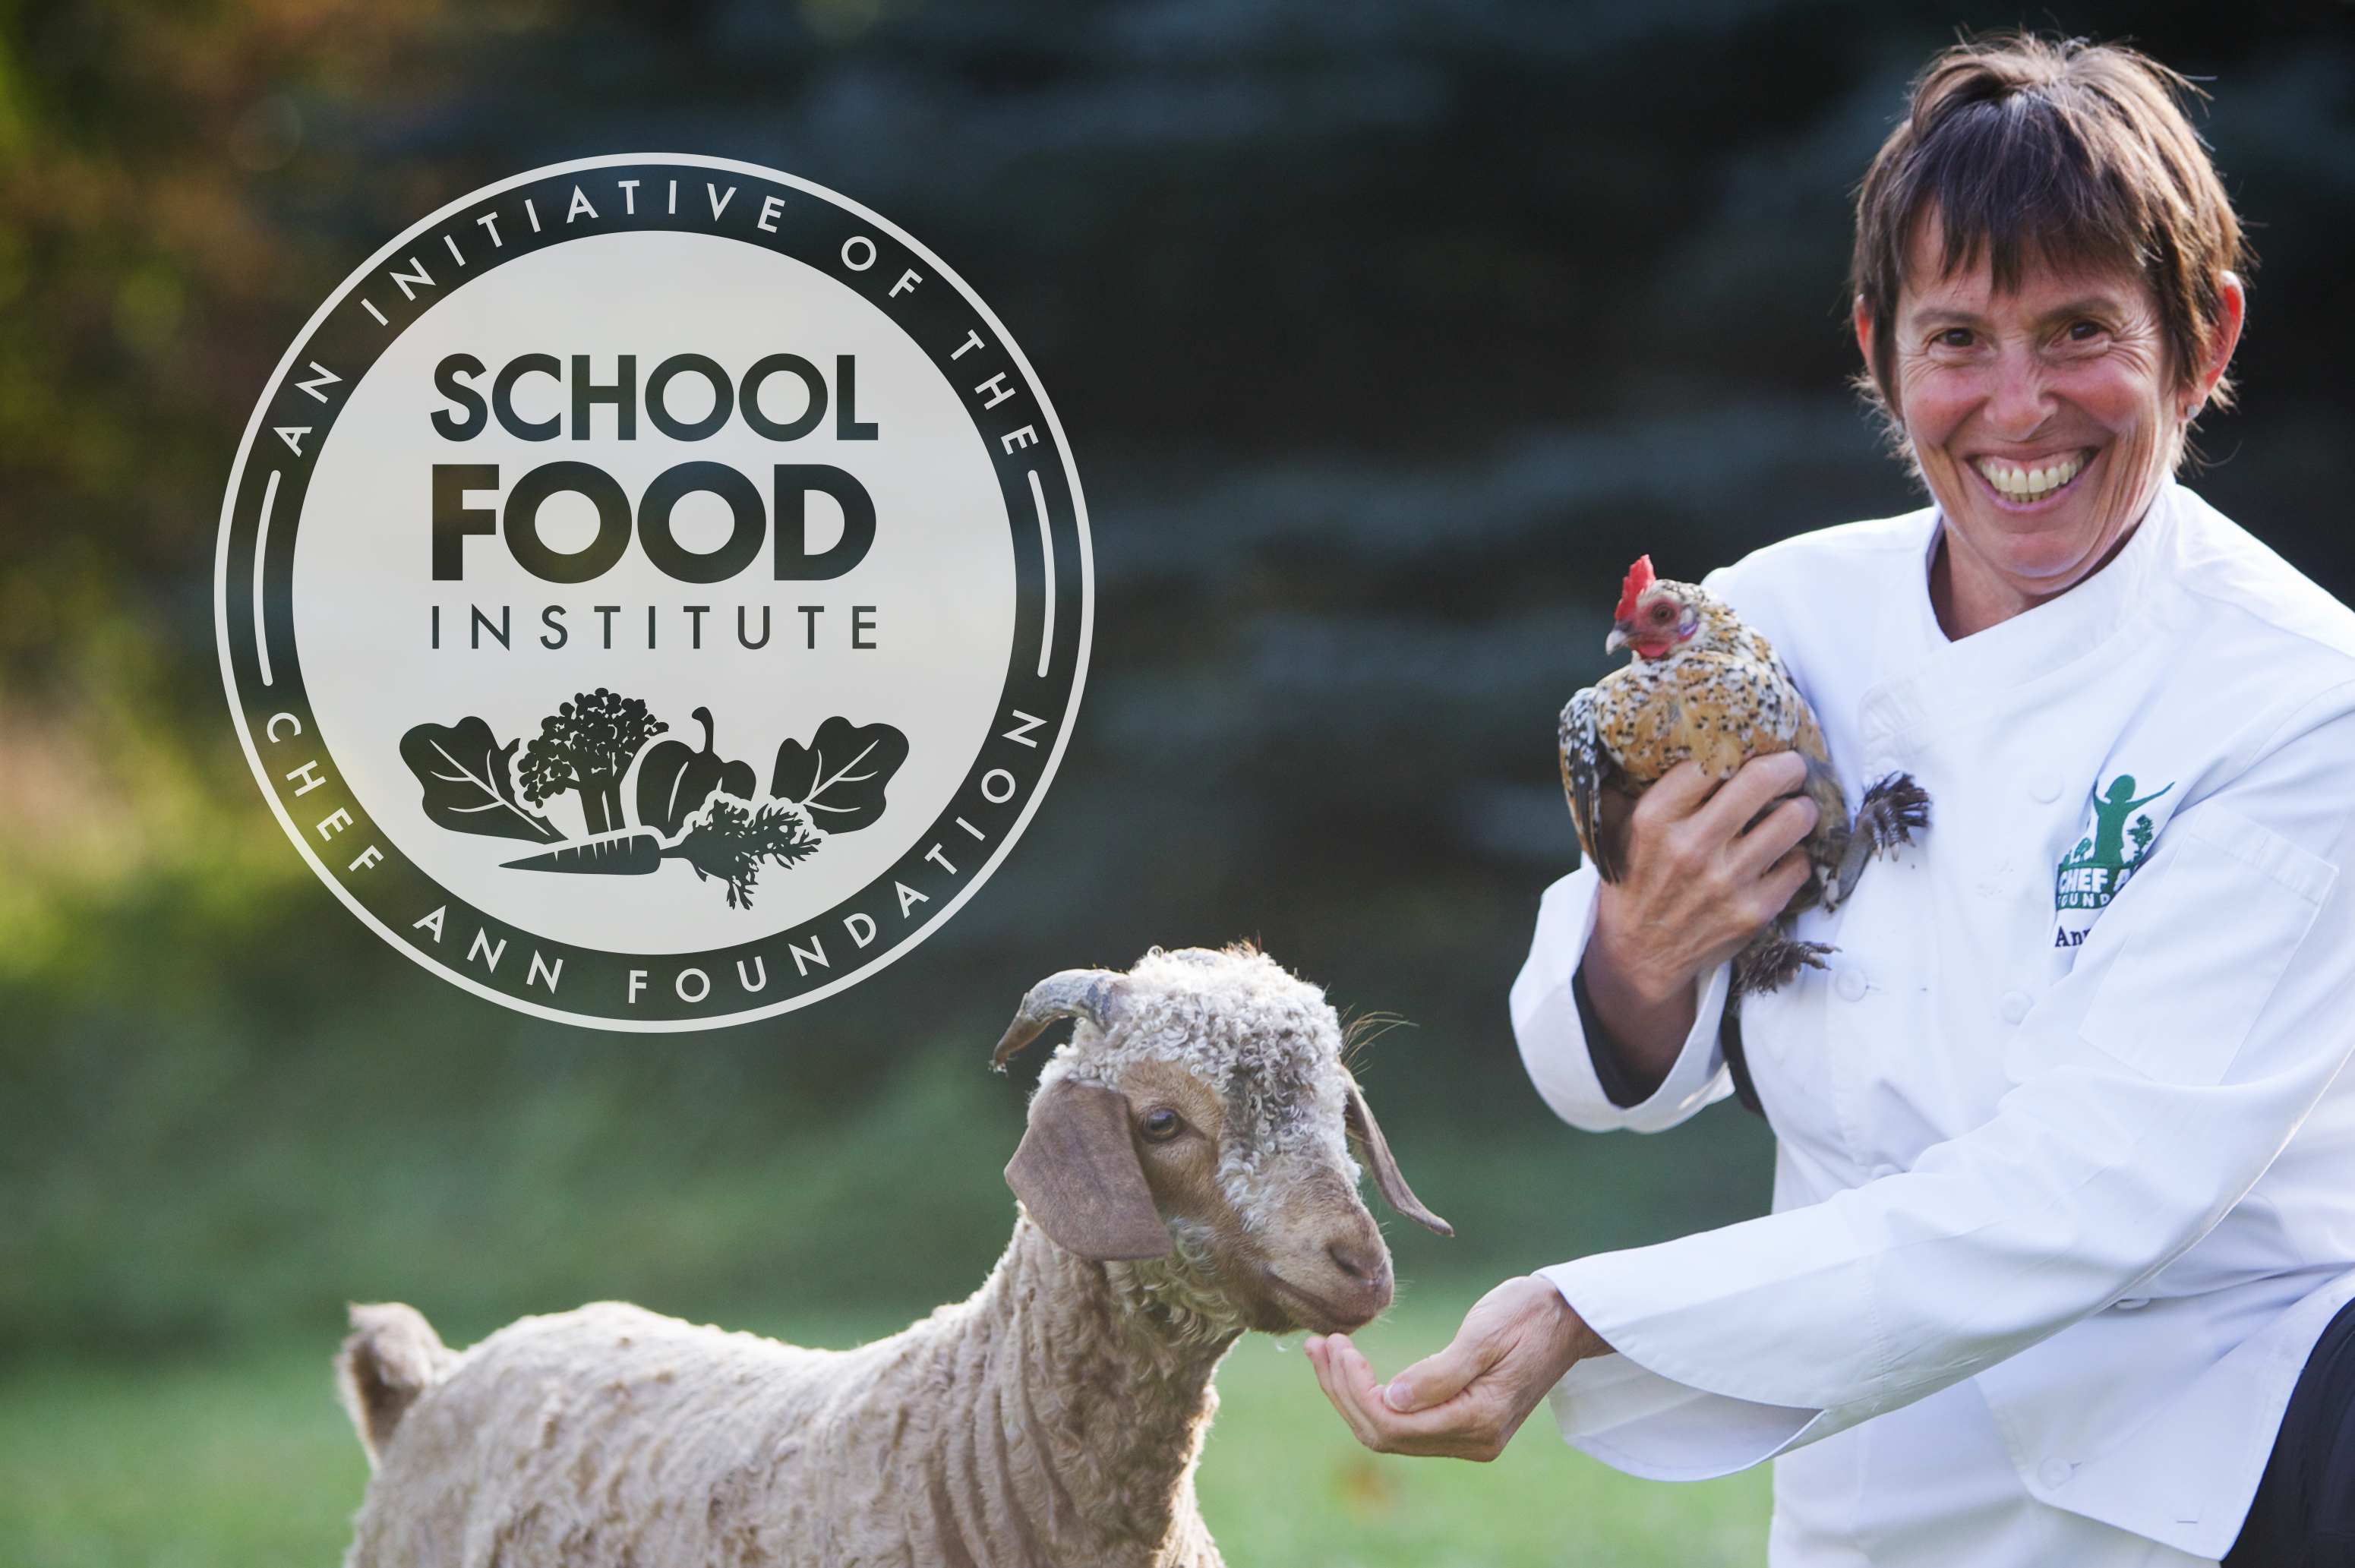 school food institute logo with founder and animals